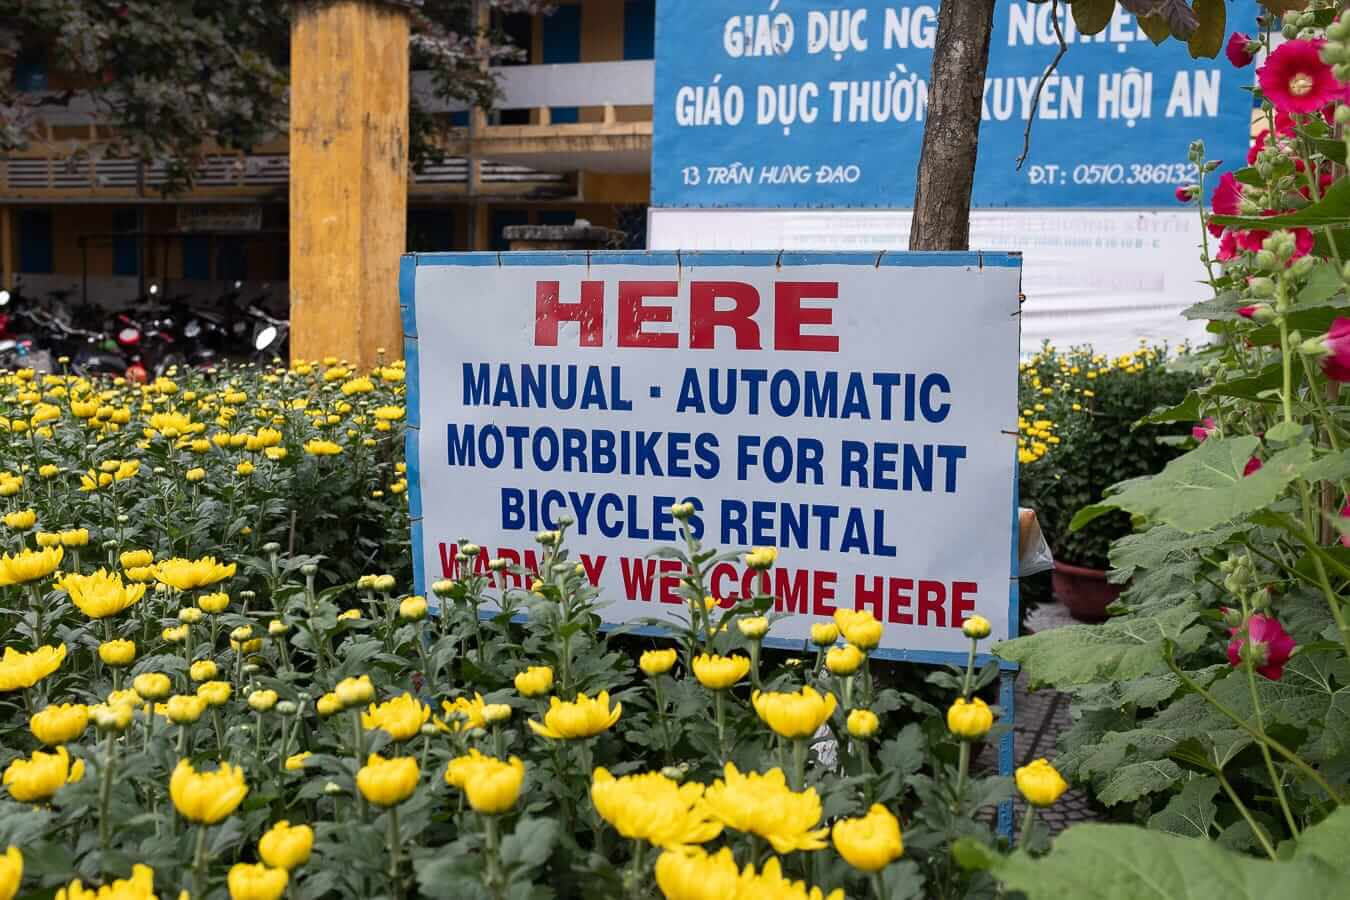 Sign for Vietnam motobike rental